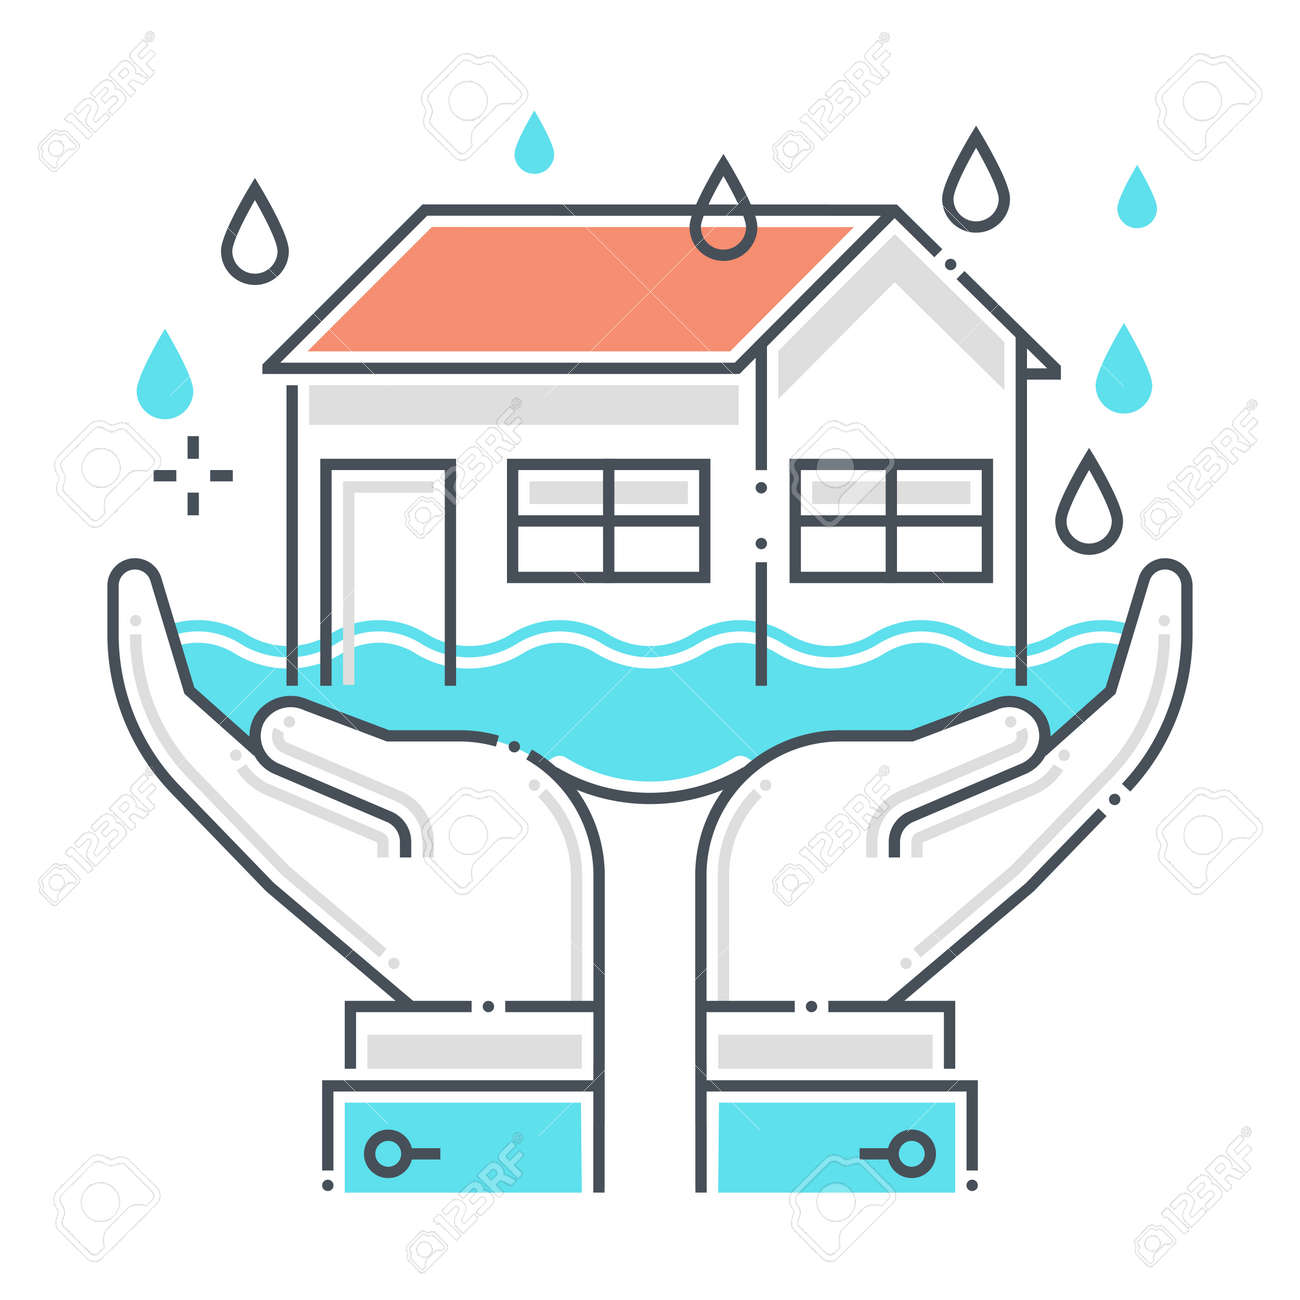 Flood protection related color line vector icon, illustration. The icon is about assurance, natural disaster, house, rain, building, water, sea. The composition is infinitely scalable. - 163698269